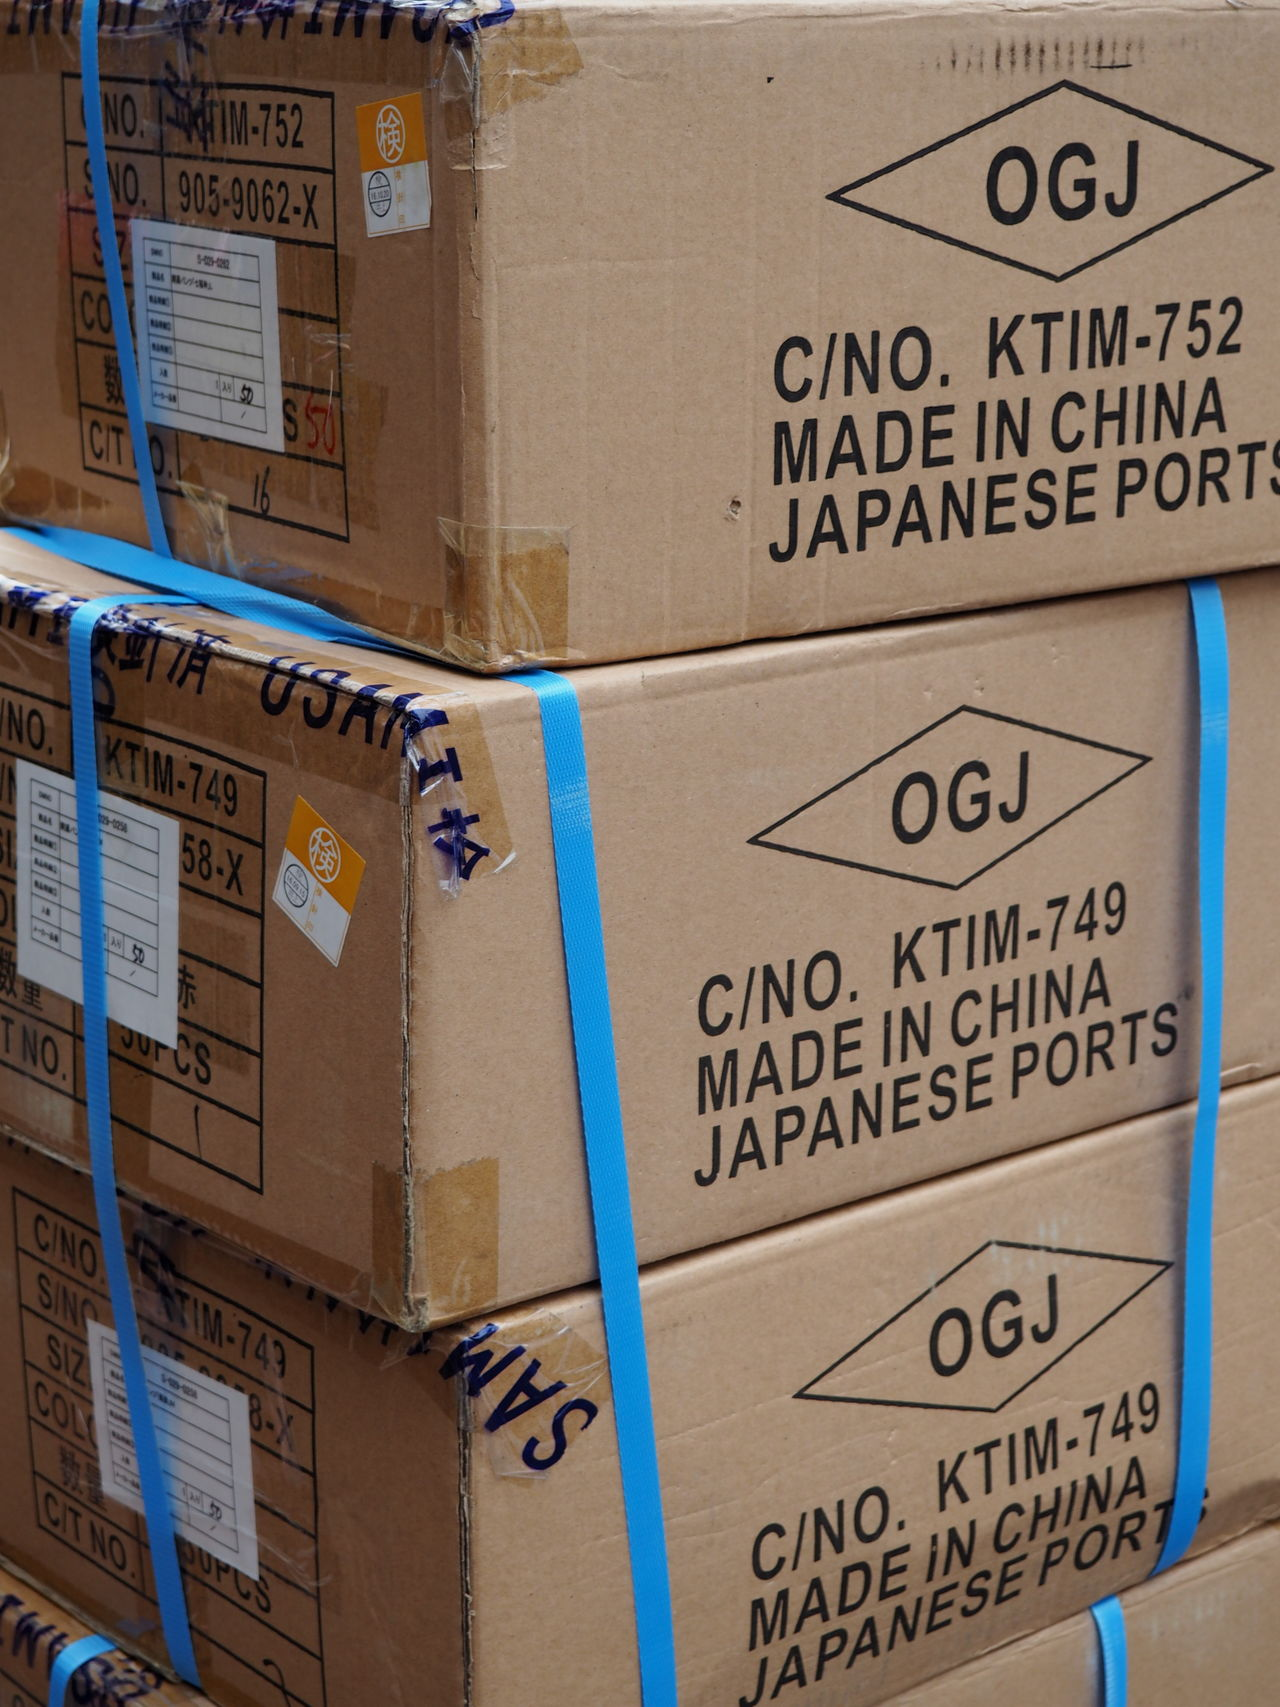 Box - Container Cardboard Box Carton Box Globalization Goods Japanese Ports Made In China Orders Shipped Shipping  Strapped Trade World Trade Wto